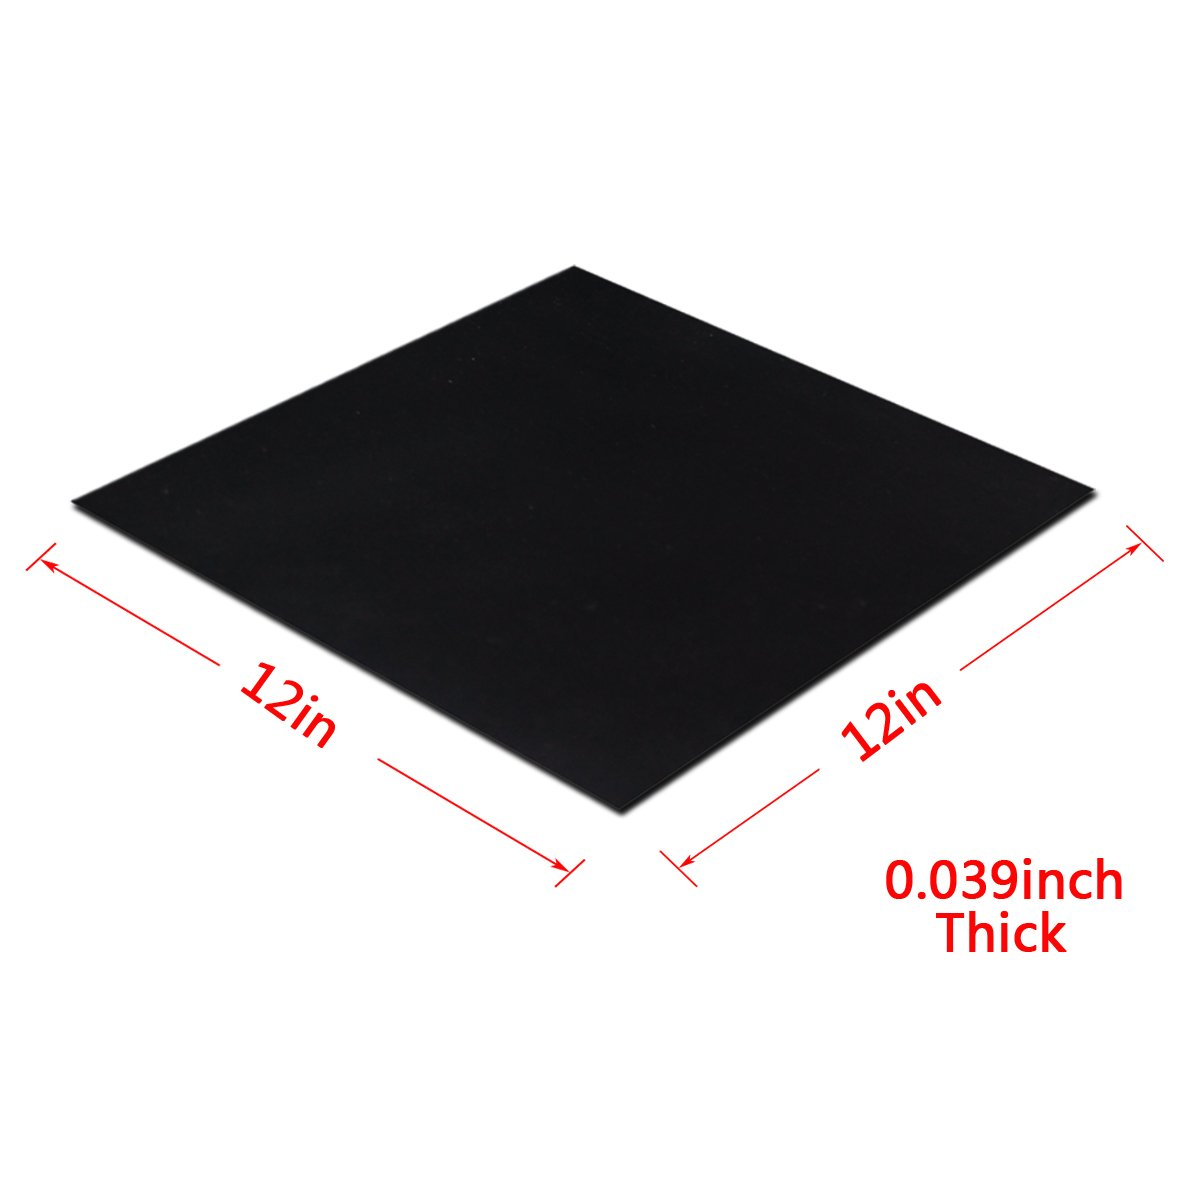 Flooring Leveling Protection Bumpers 0.157Inch Thick Rubber Sheet Black,12Inch Length X 12Inch Wide Supports Heavy Duty Abrasion Gaskets DIY Material Sealing